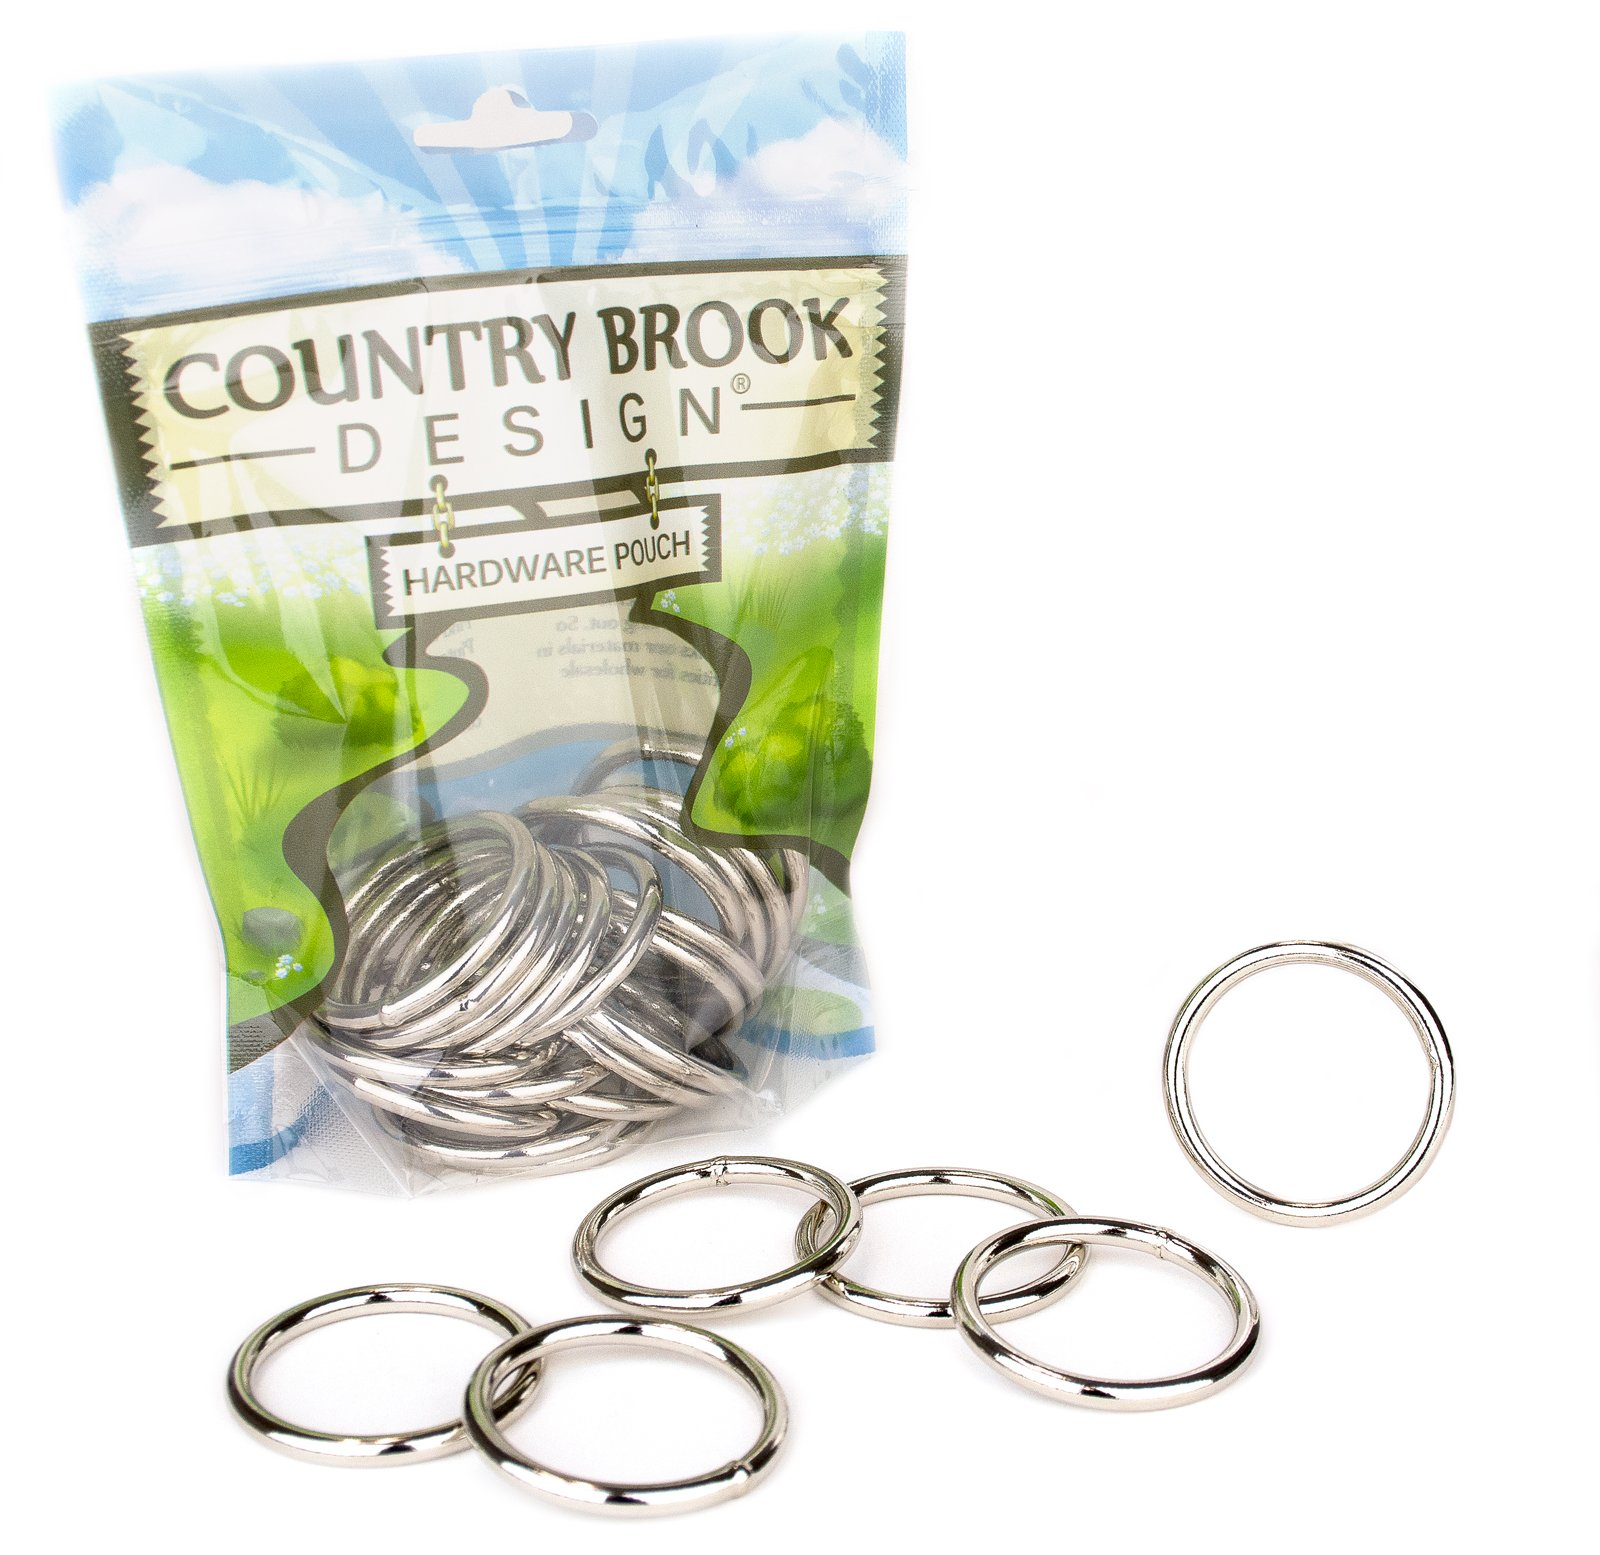 50 - Country Brook Design | 1 1/2 Inch Welded Heavy O-Rings